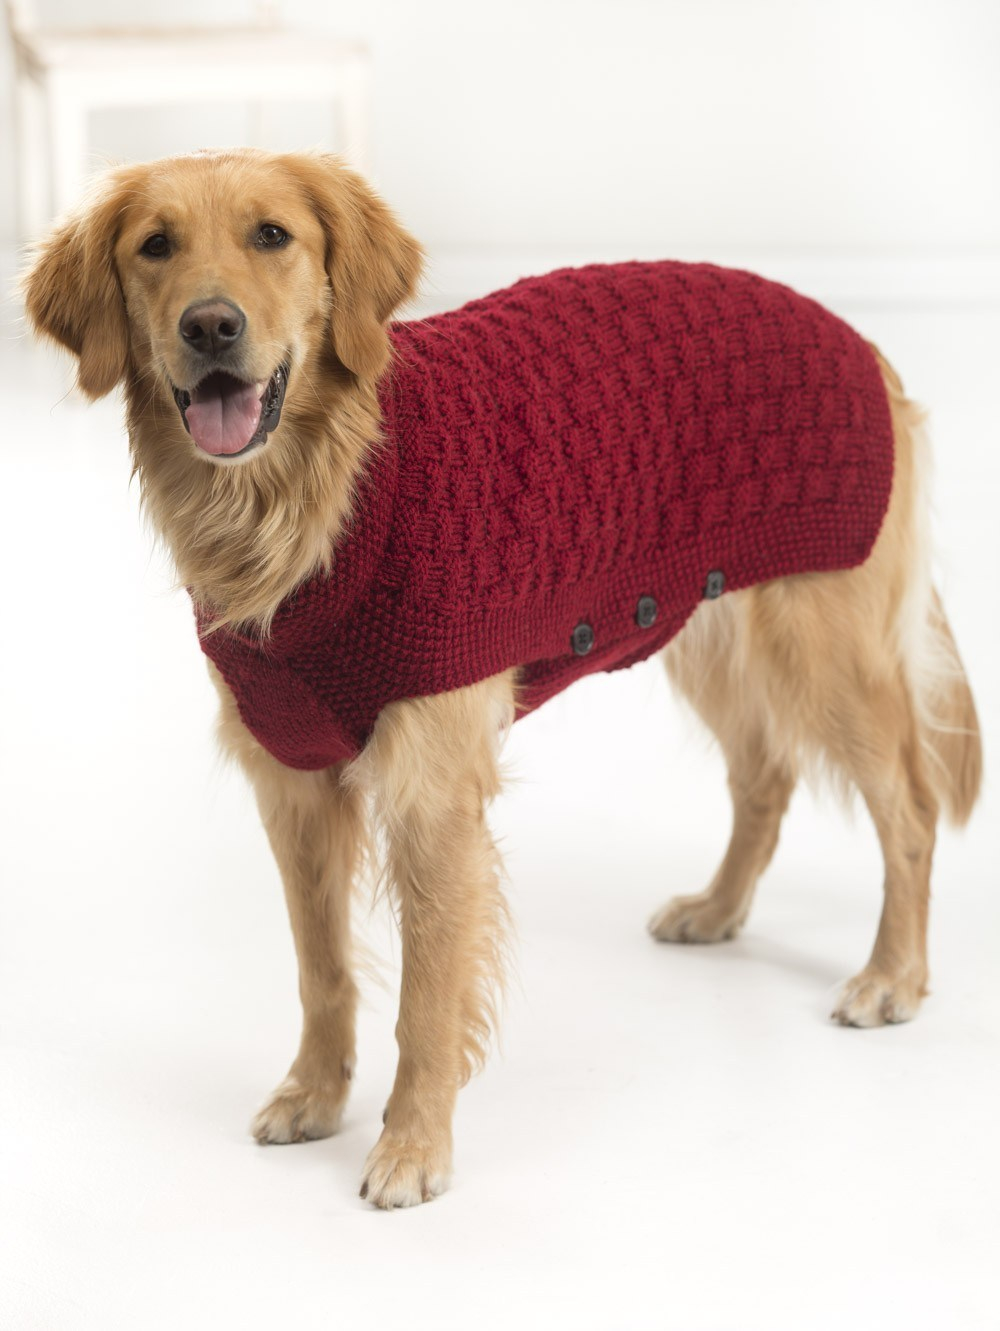 Knitting Patterns Dog Coats 10 Stunning Examples Of Beautiful Fall Dog Sweaters Free Knitting